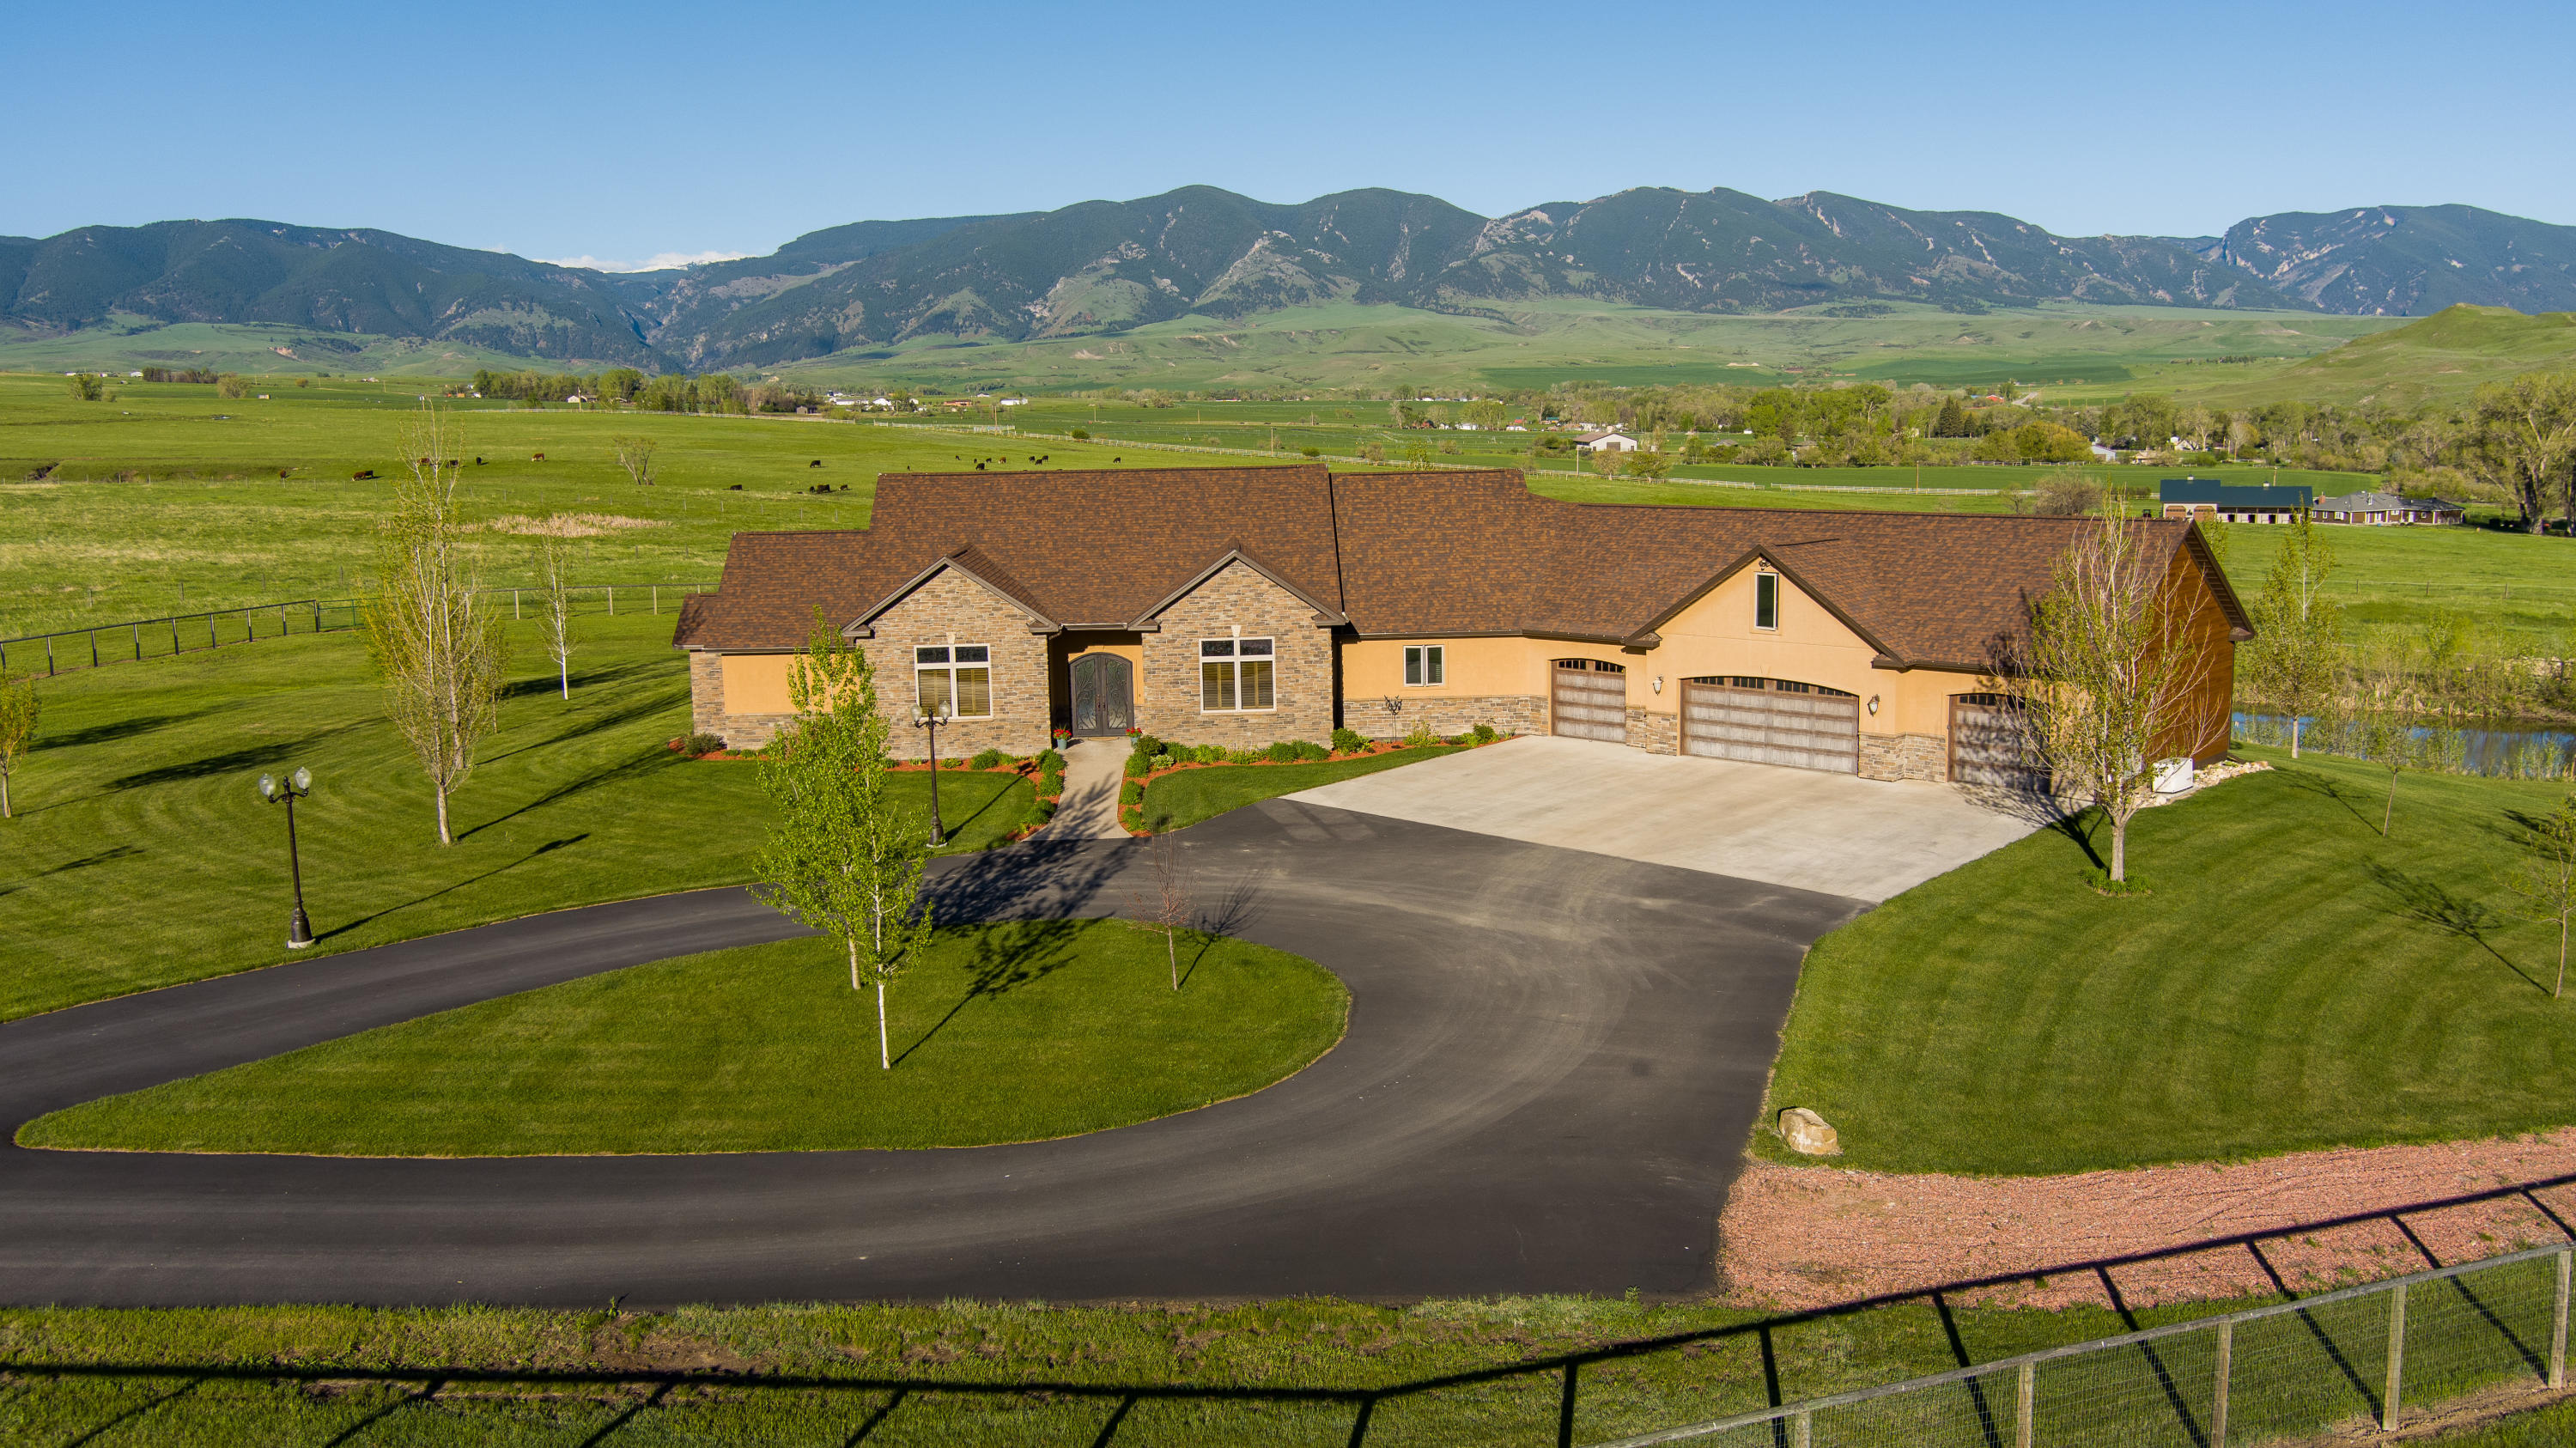 Sheridan Real Estate For Sale 850k Features Luxury Homes Estates